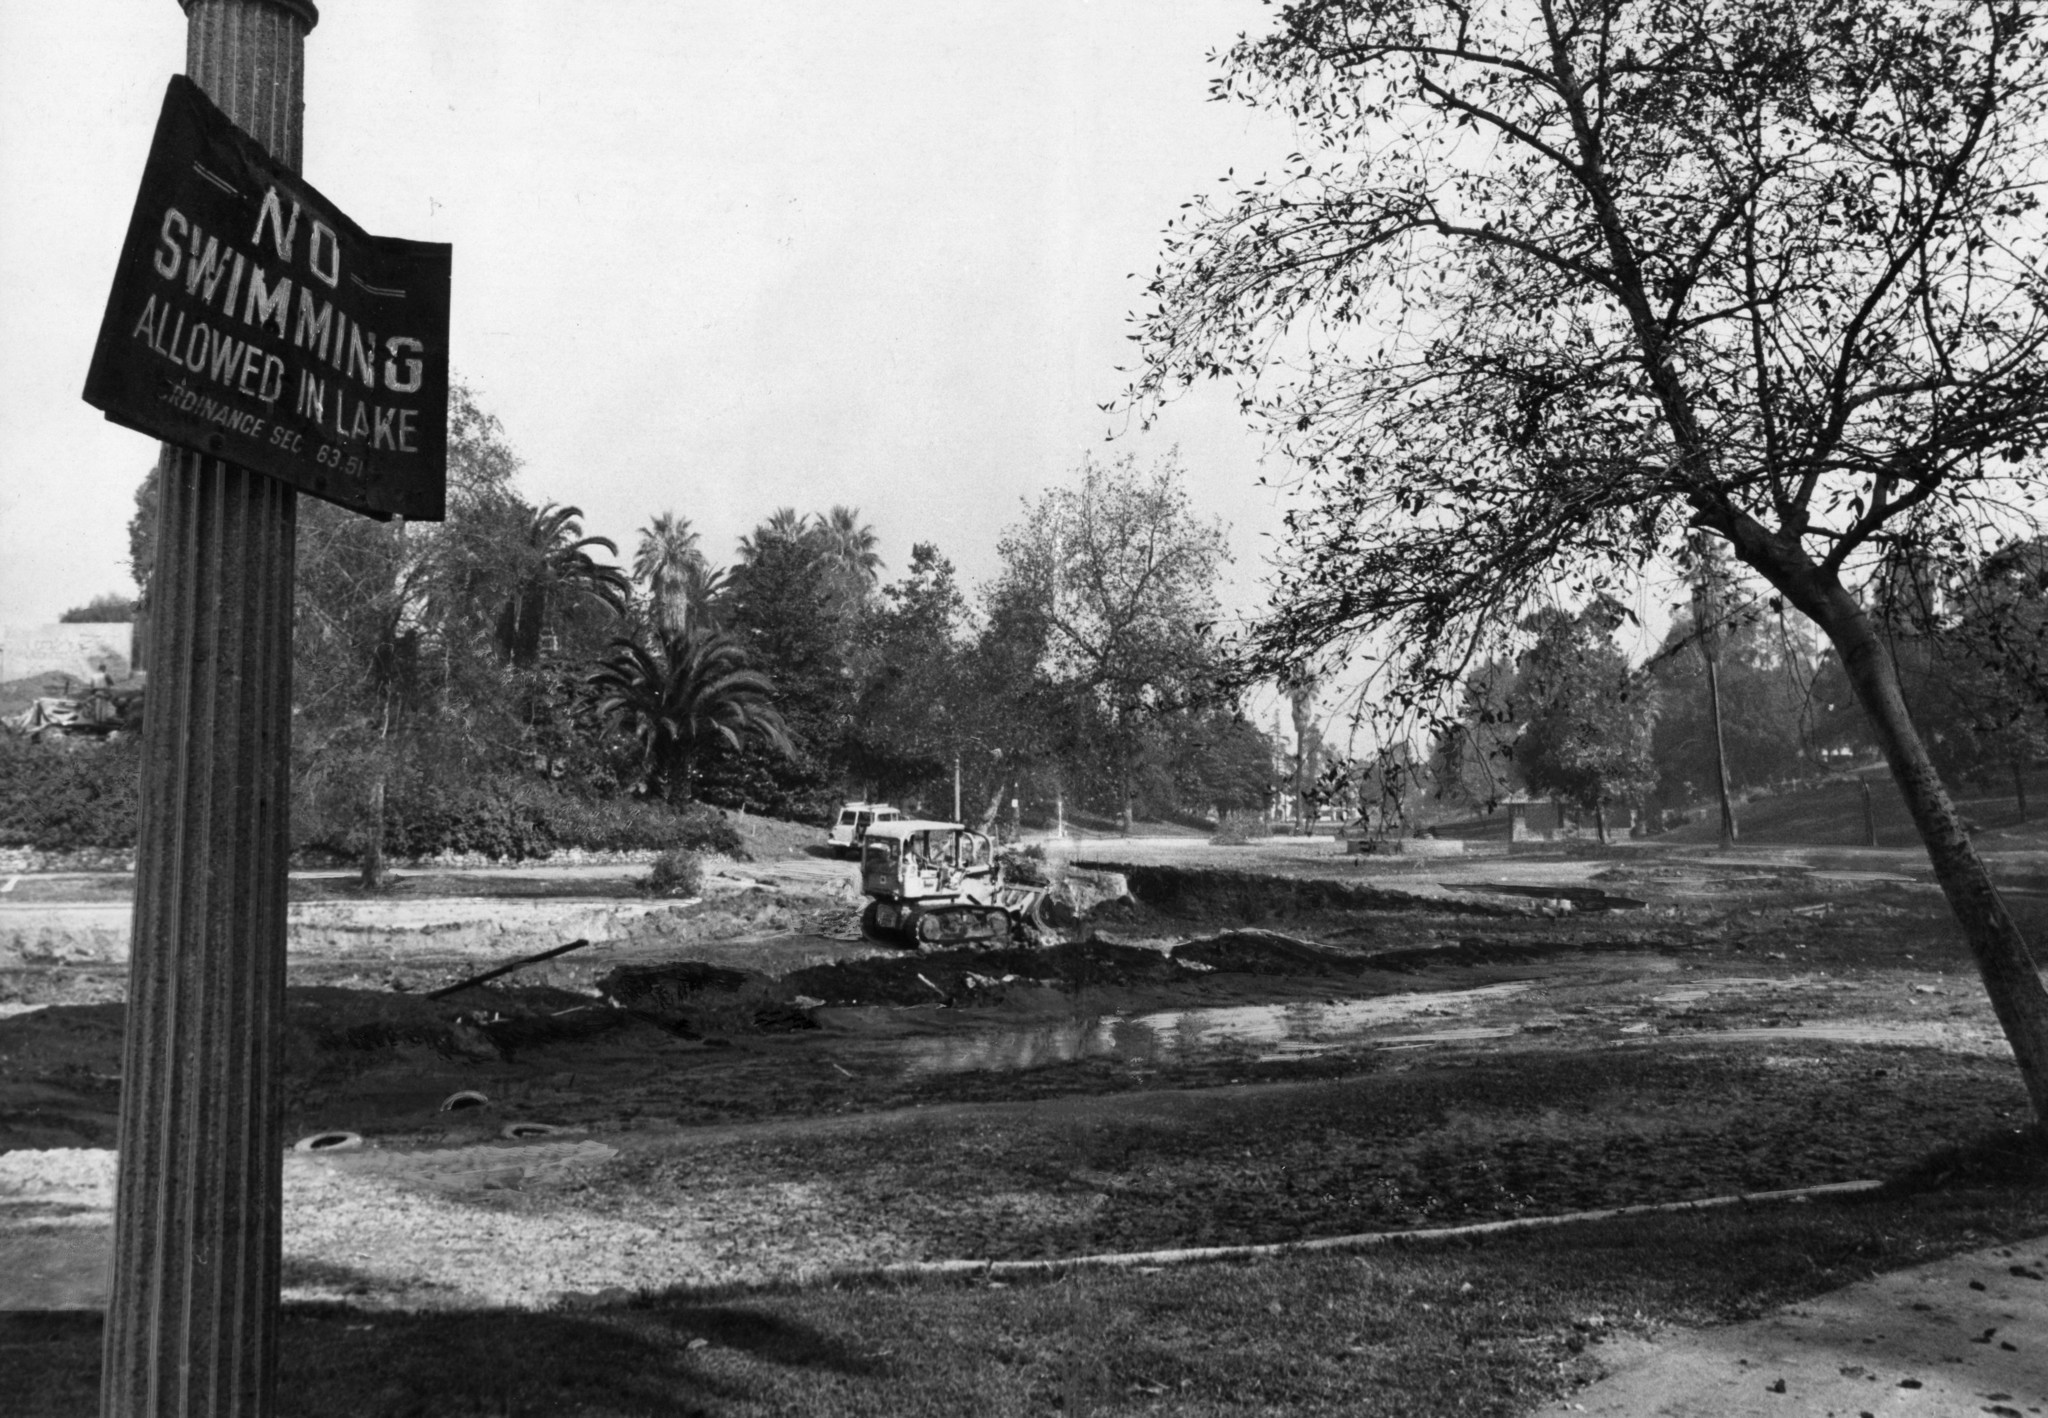 Nov. 18, 1970: Bulldozer removes dirt from Hollenbeck Lake bottom to make room for new pontoon bridg